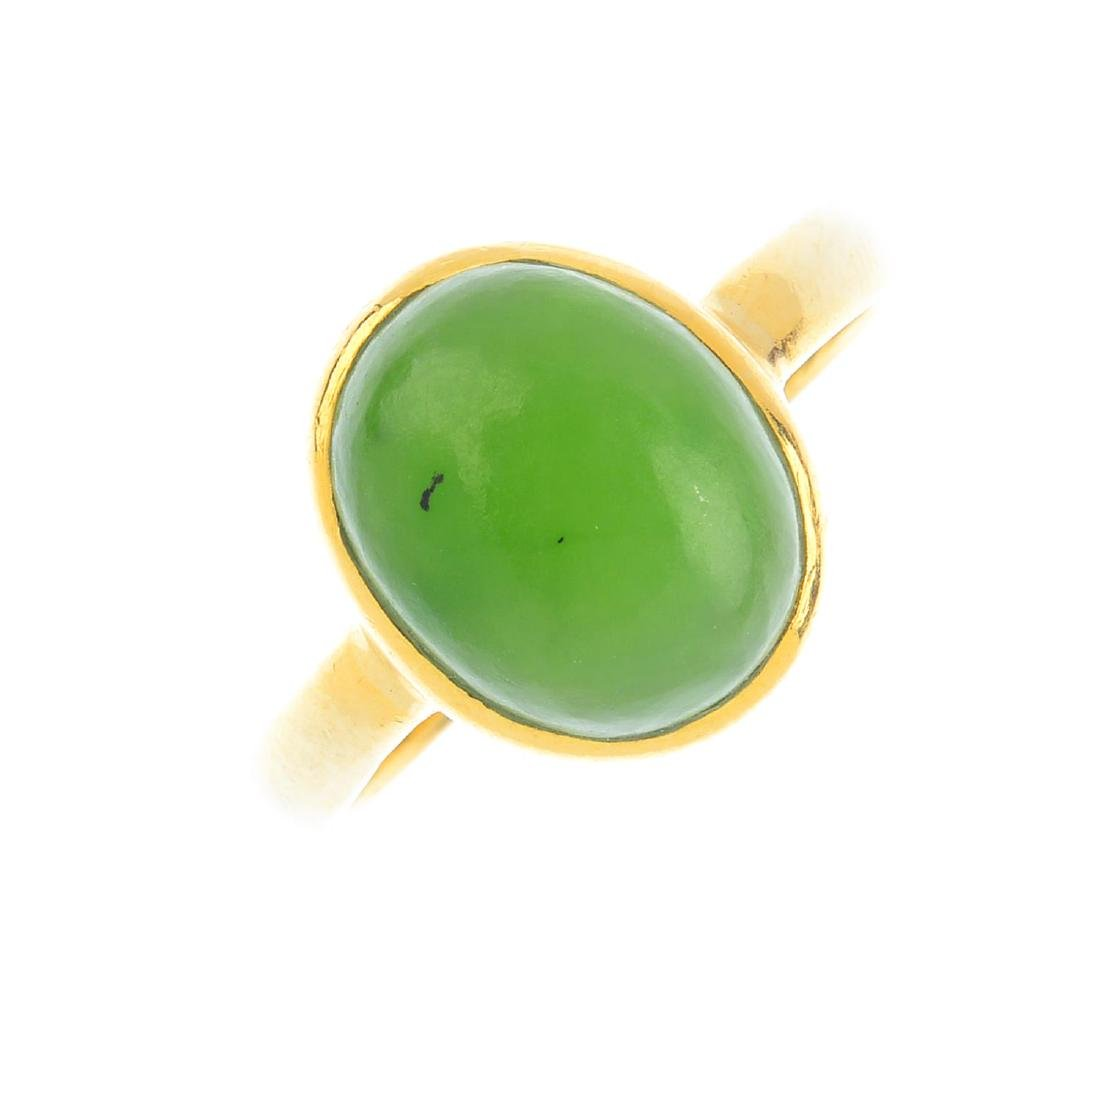 A jade single-stone ring. The oval nephrite cabochon